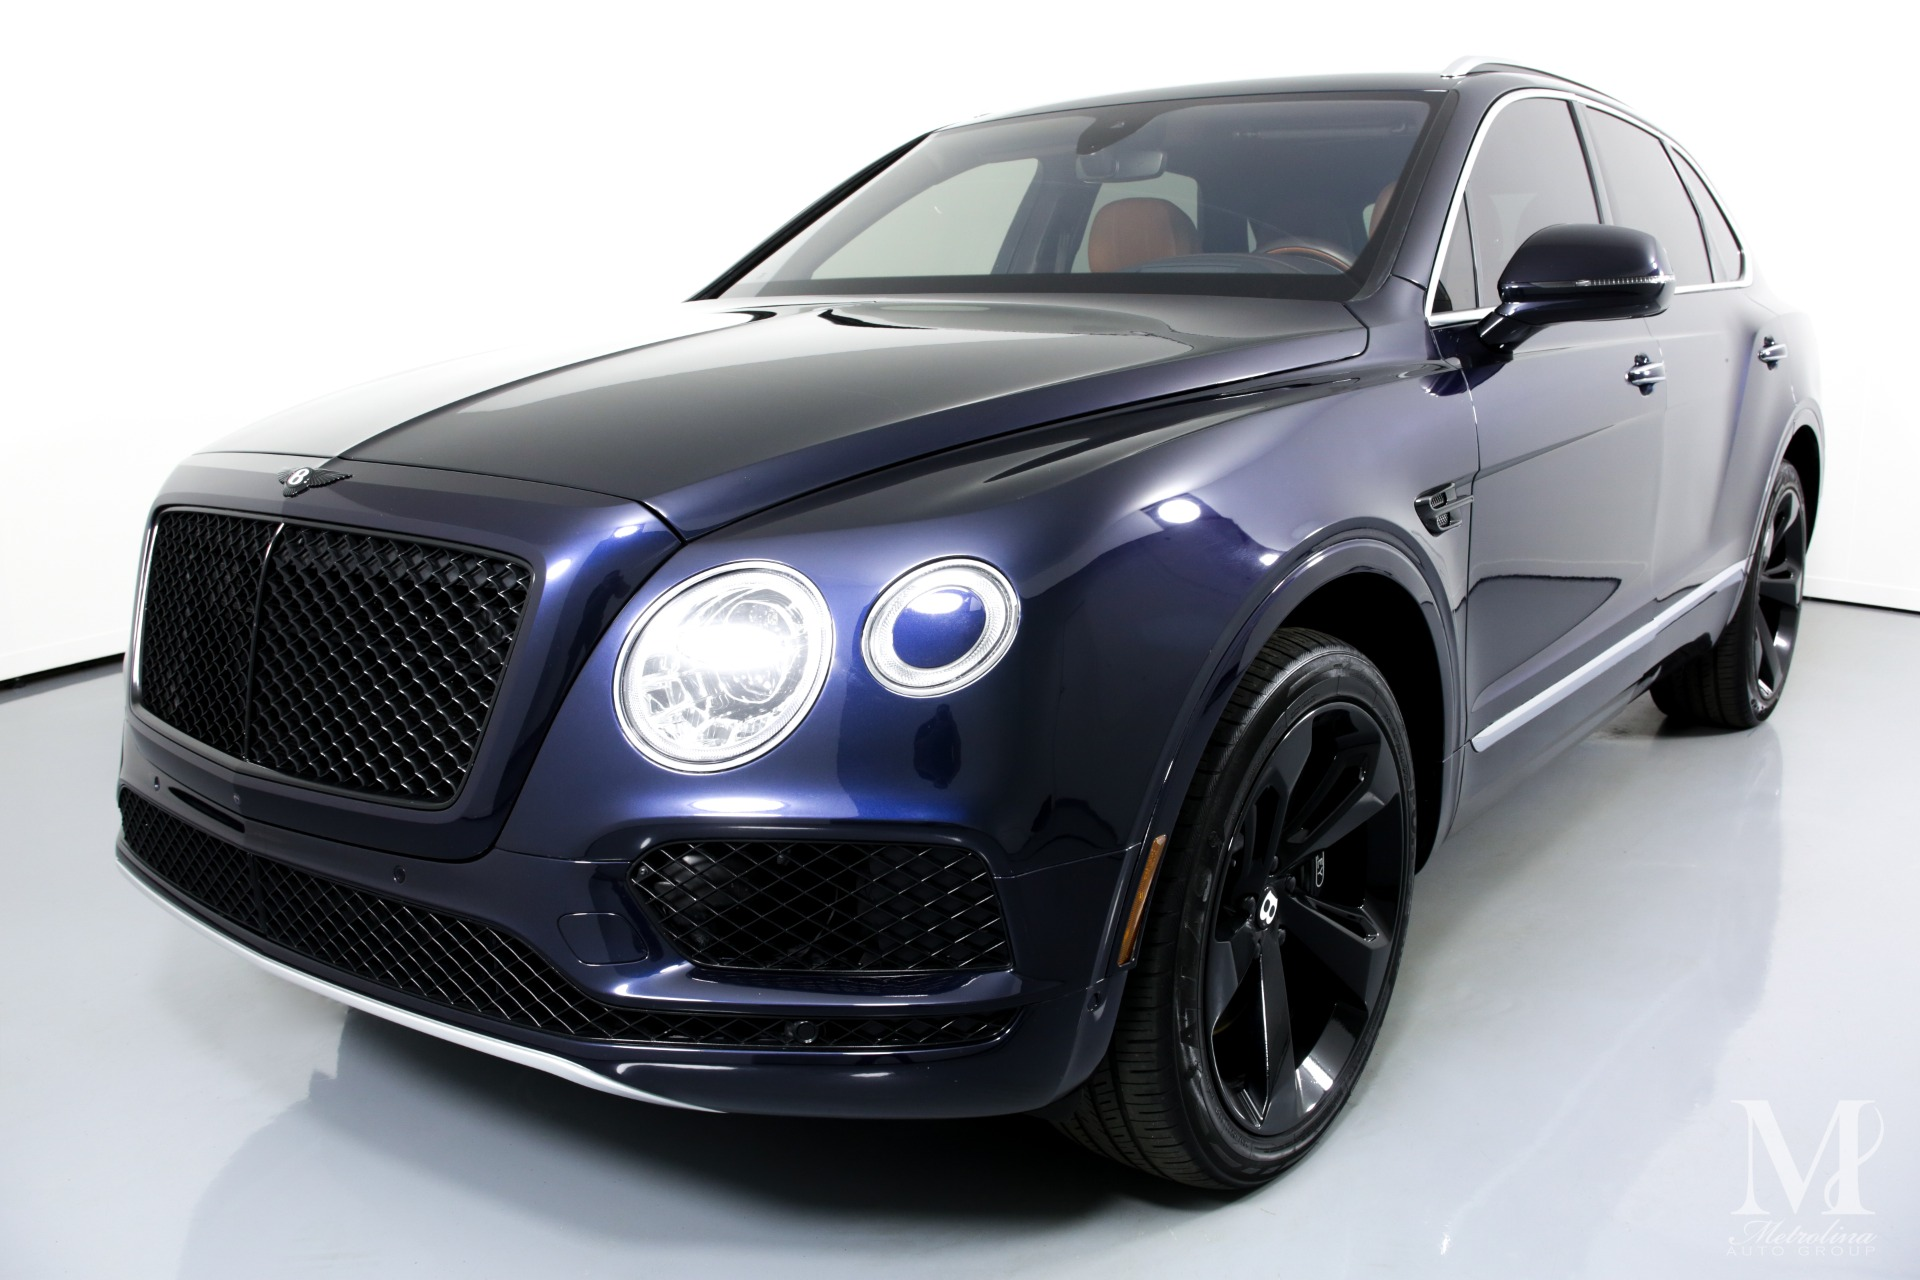 Used 2017 Bentley Bentayga W12 for sale $129,996 at Metrolina Auto Group in Charlotte NC 28217 - 4